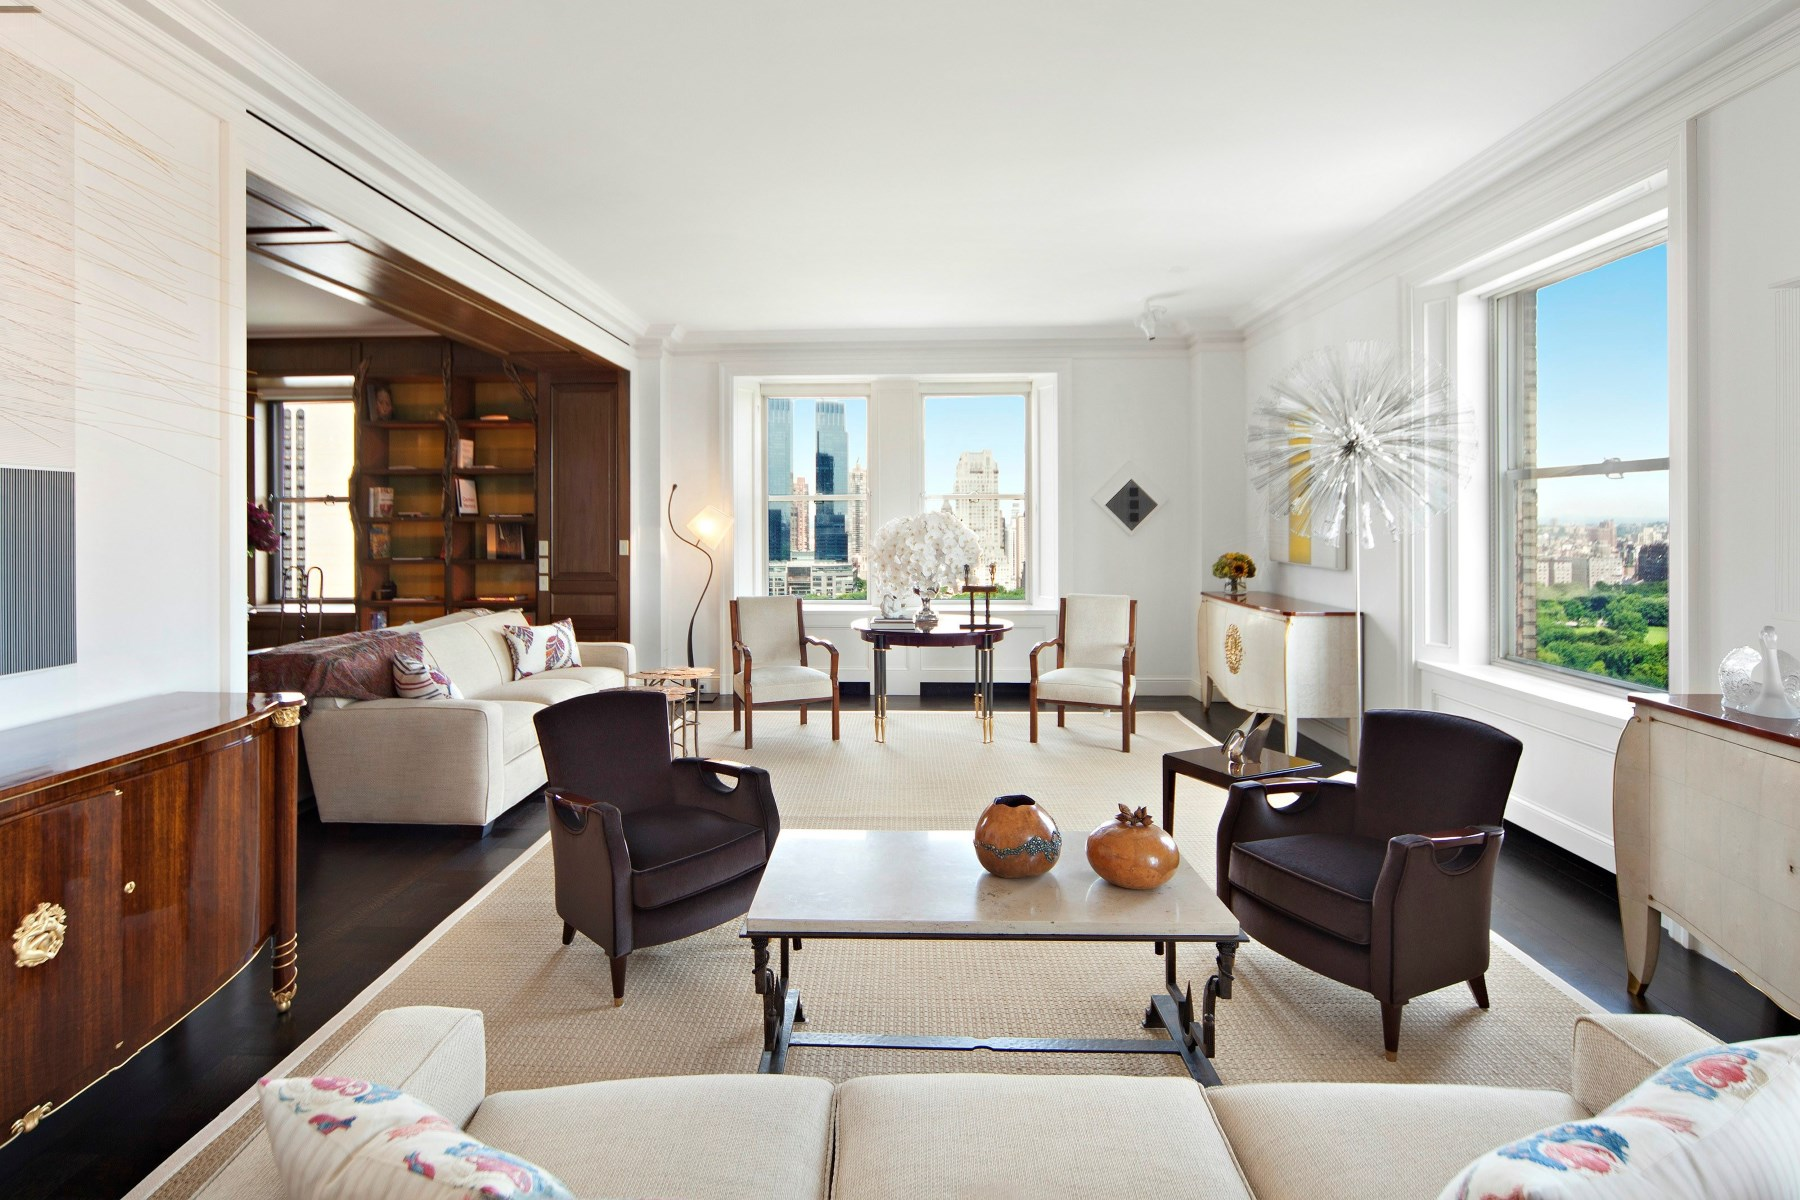 Co-op for Sale at Pierre Hotel Perfection 795 Fifth Avenue Apt 30/31 New York, New York 10065 United States